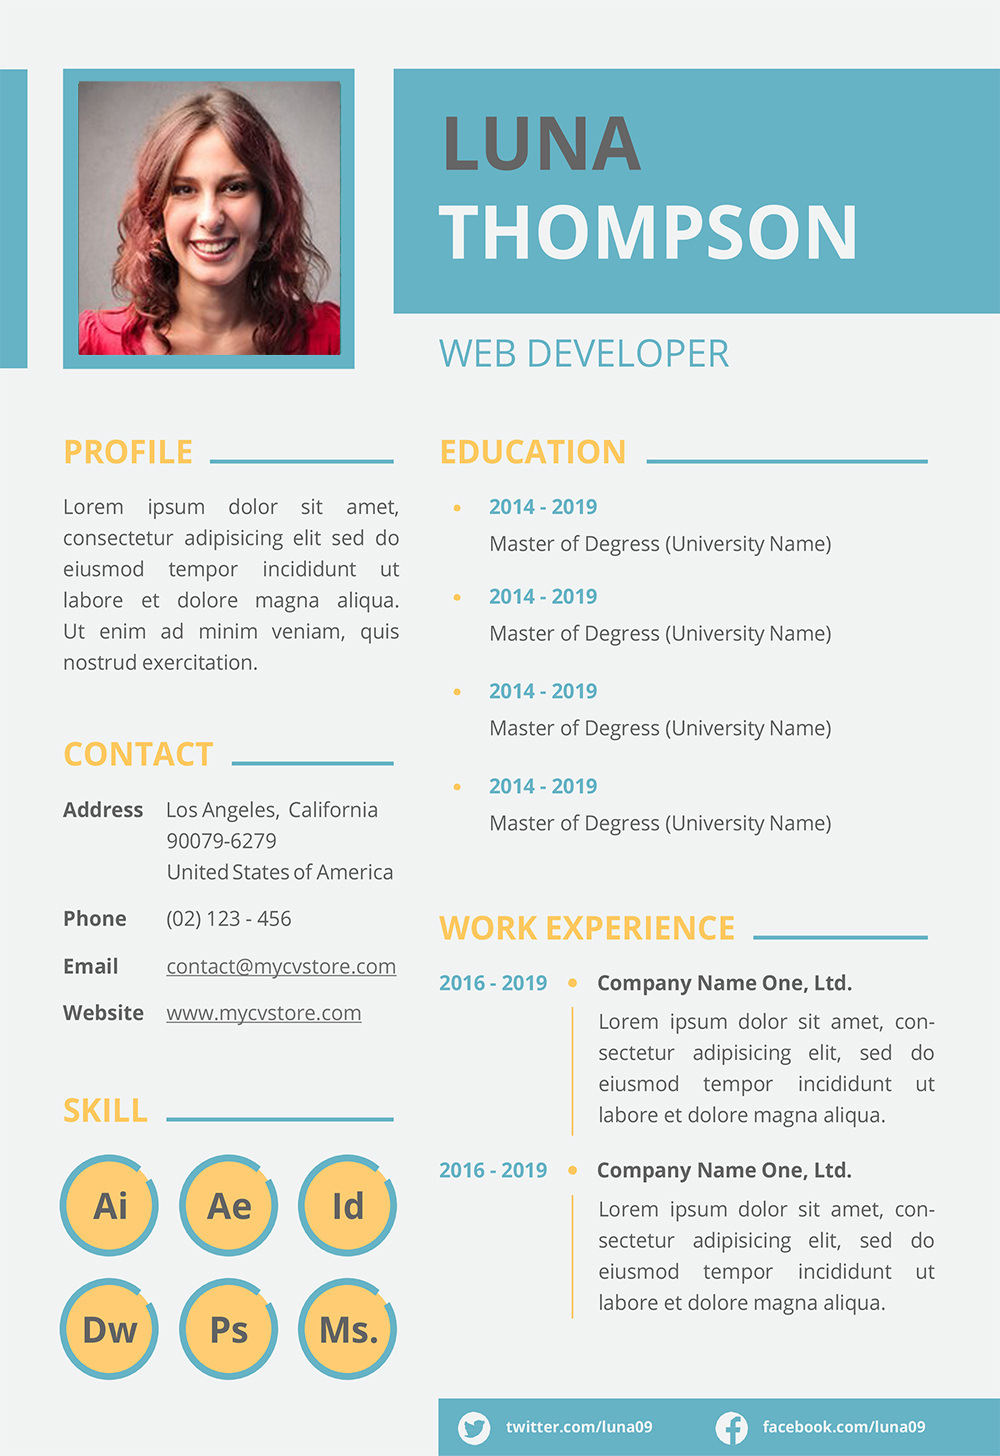 Resume Template Microsoft Word 2014 from www.mycvstore.com